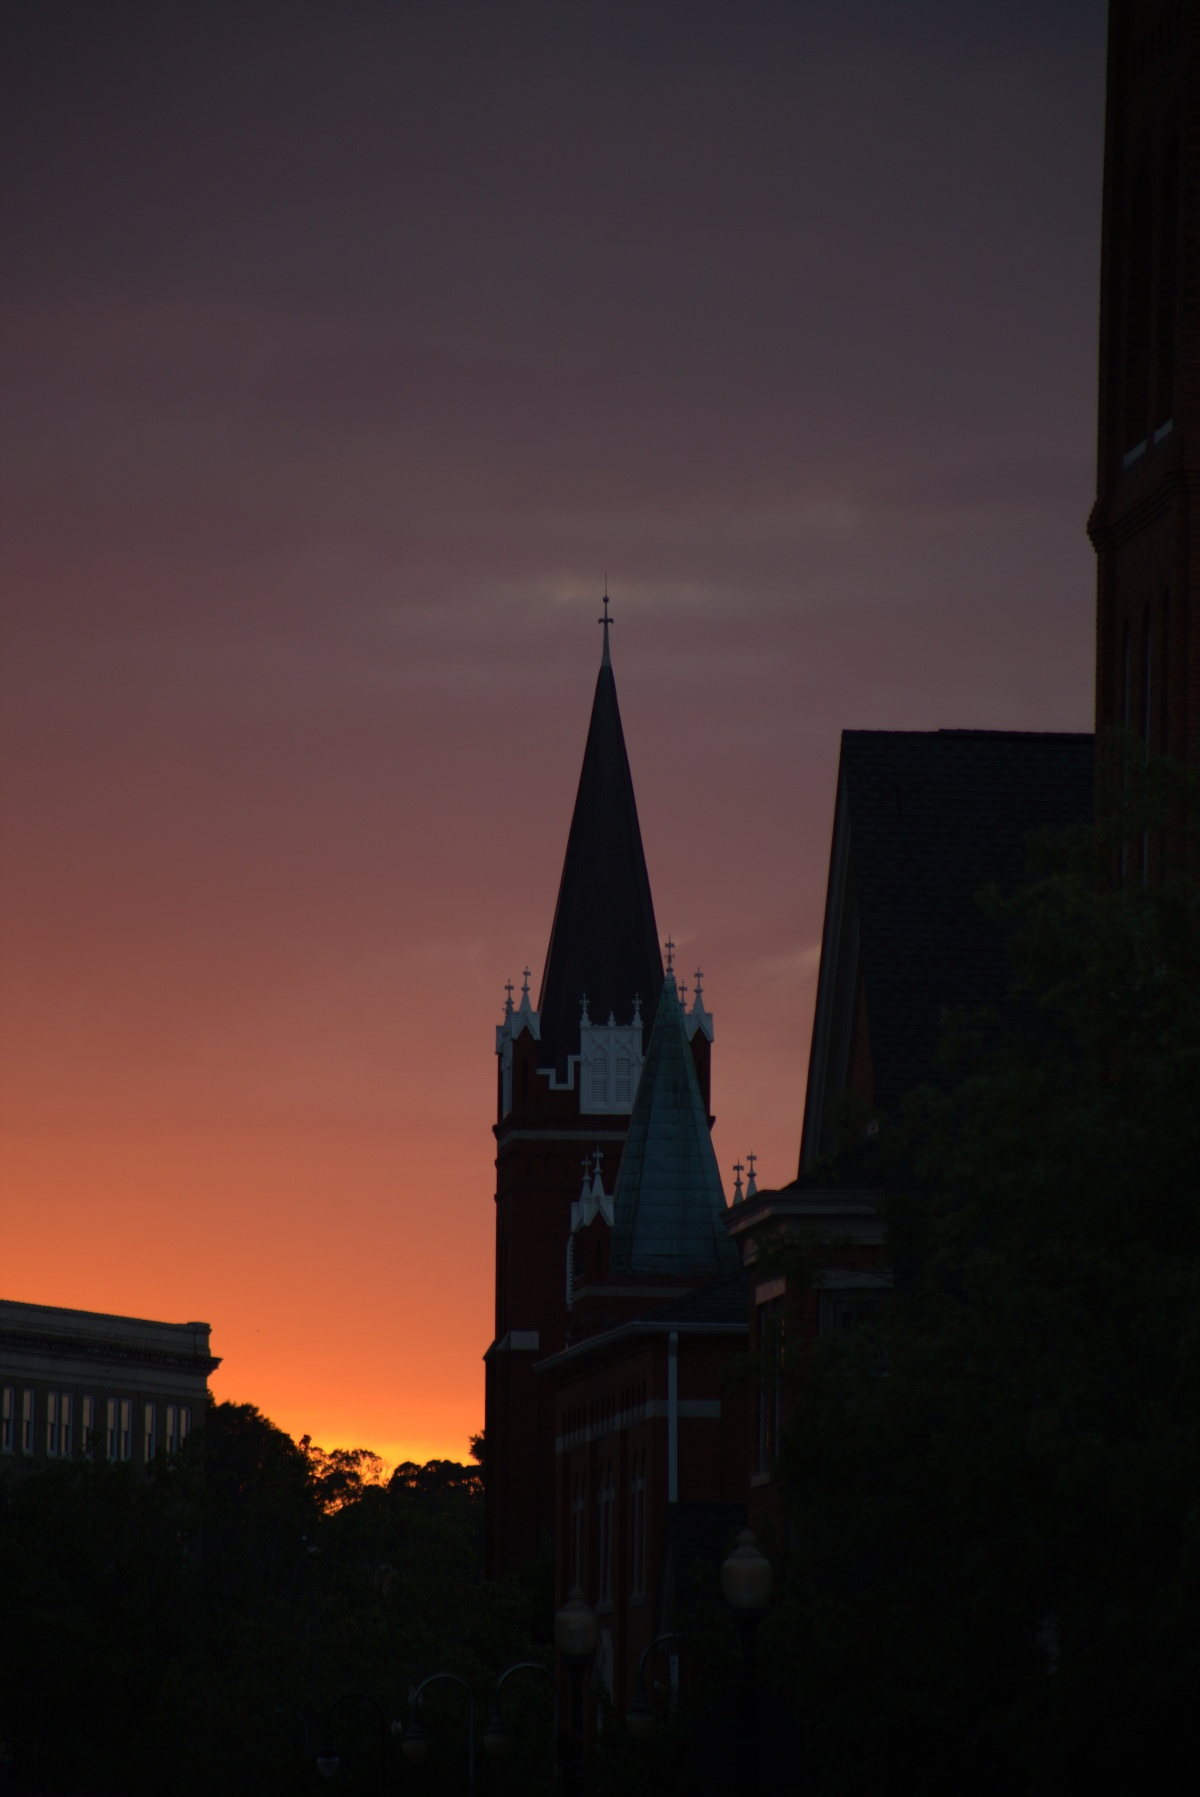 Photography ~ Looking West at sunset along 3 blocks of Old Street, Fayetteville, North Carolina, 09/17